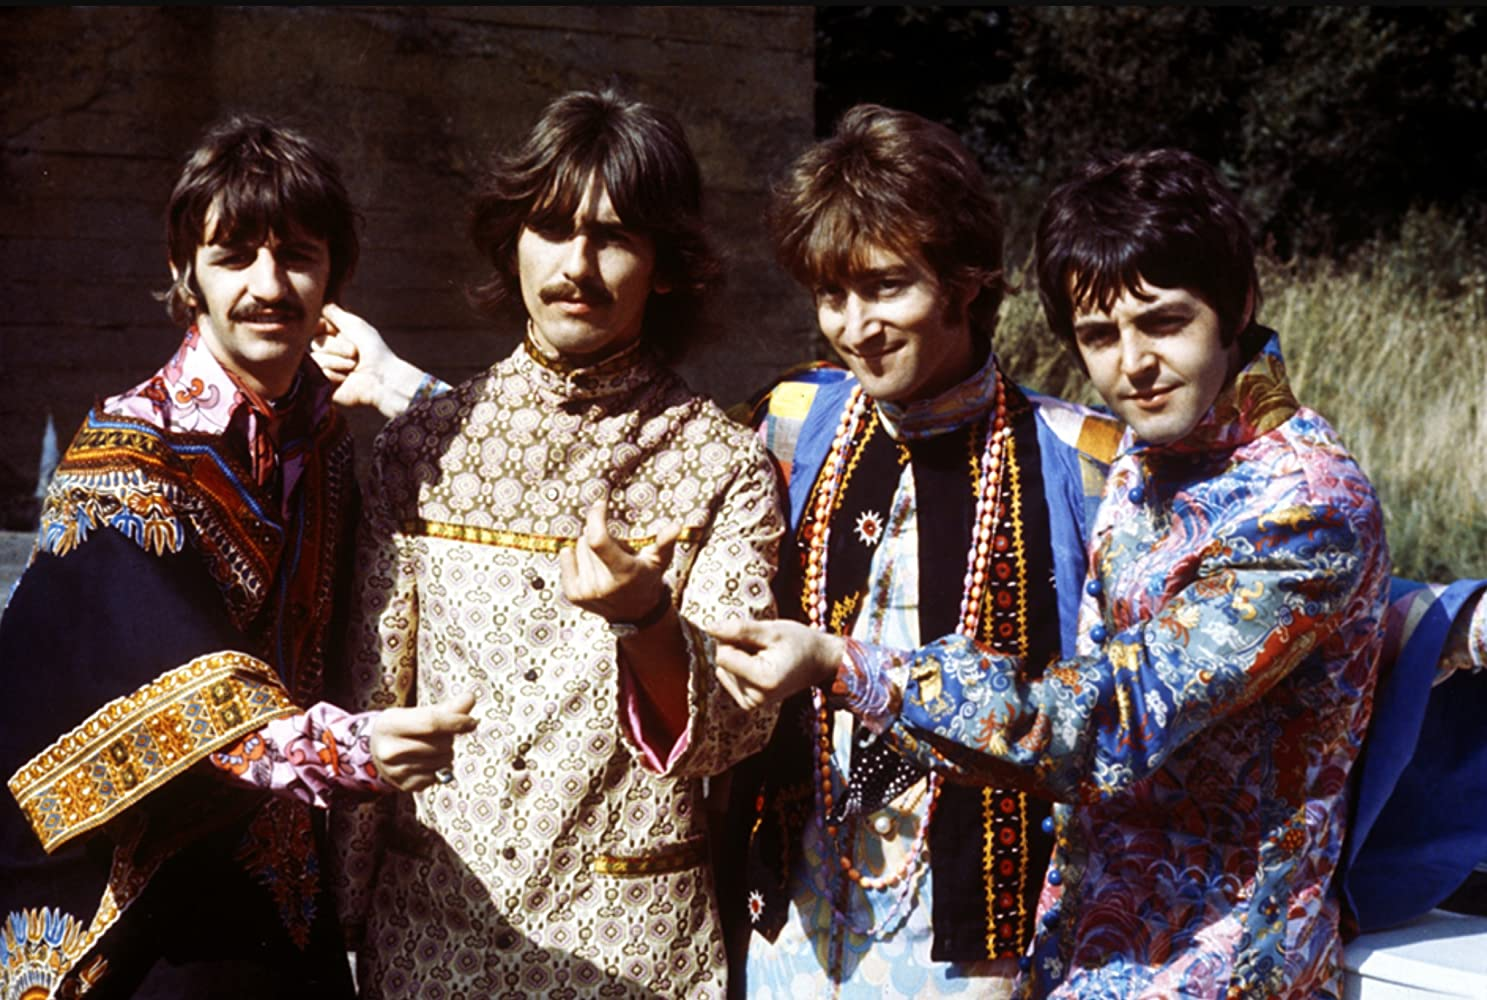 Paul McCartney John Lennon George Harrison Ringo Starr and The Beatles in Magical Mystery Tour 1967